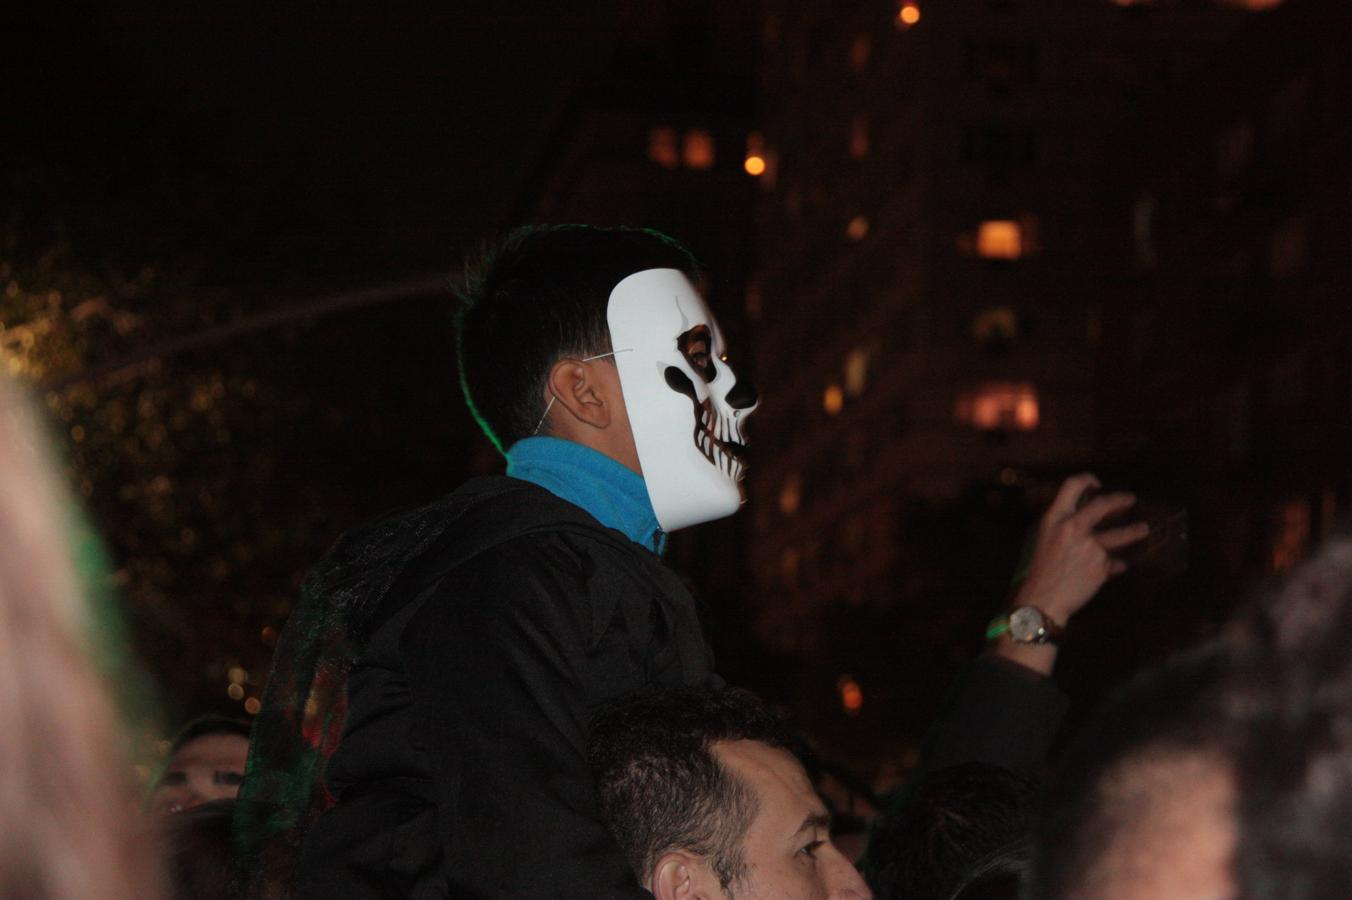 Nueva York se viste de Halloween